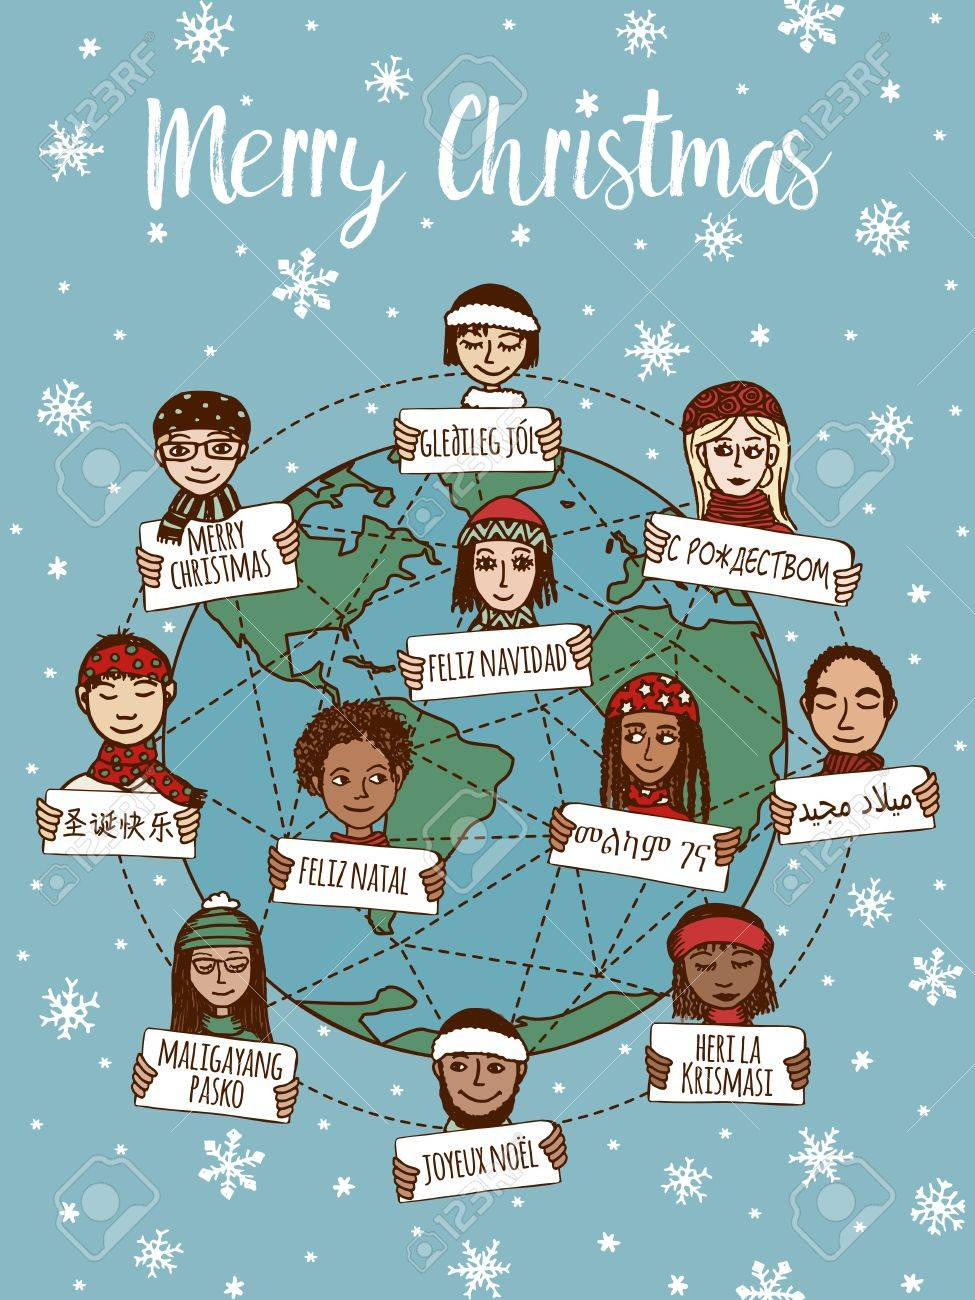 Christmas around the world - hand drawn doodle faces with Merry Christmas signs in different languages - 64562447